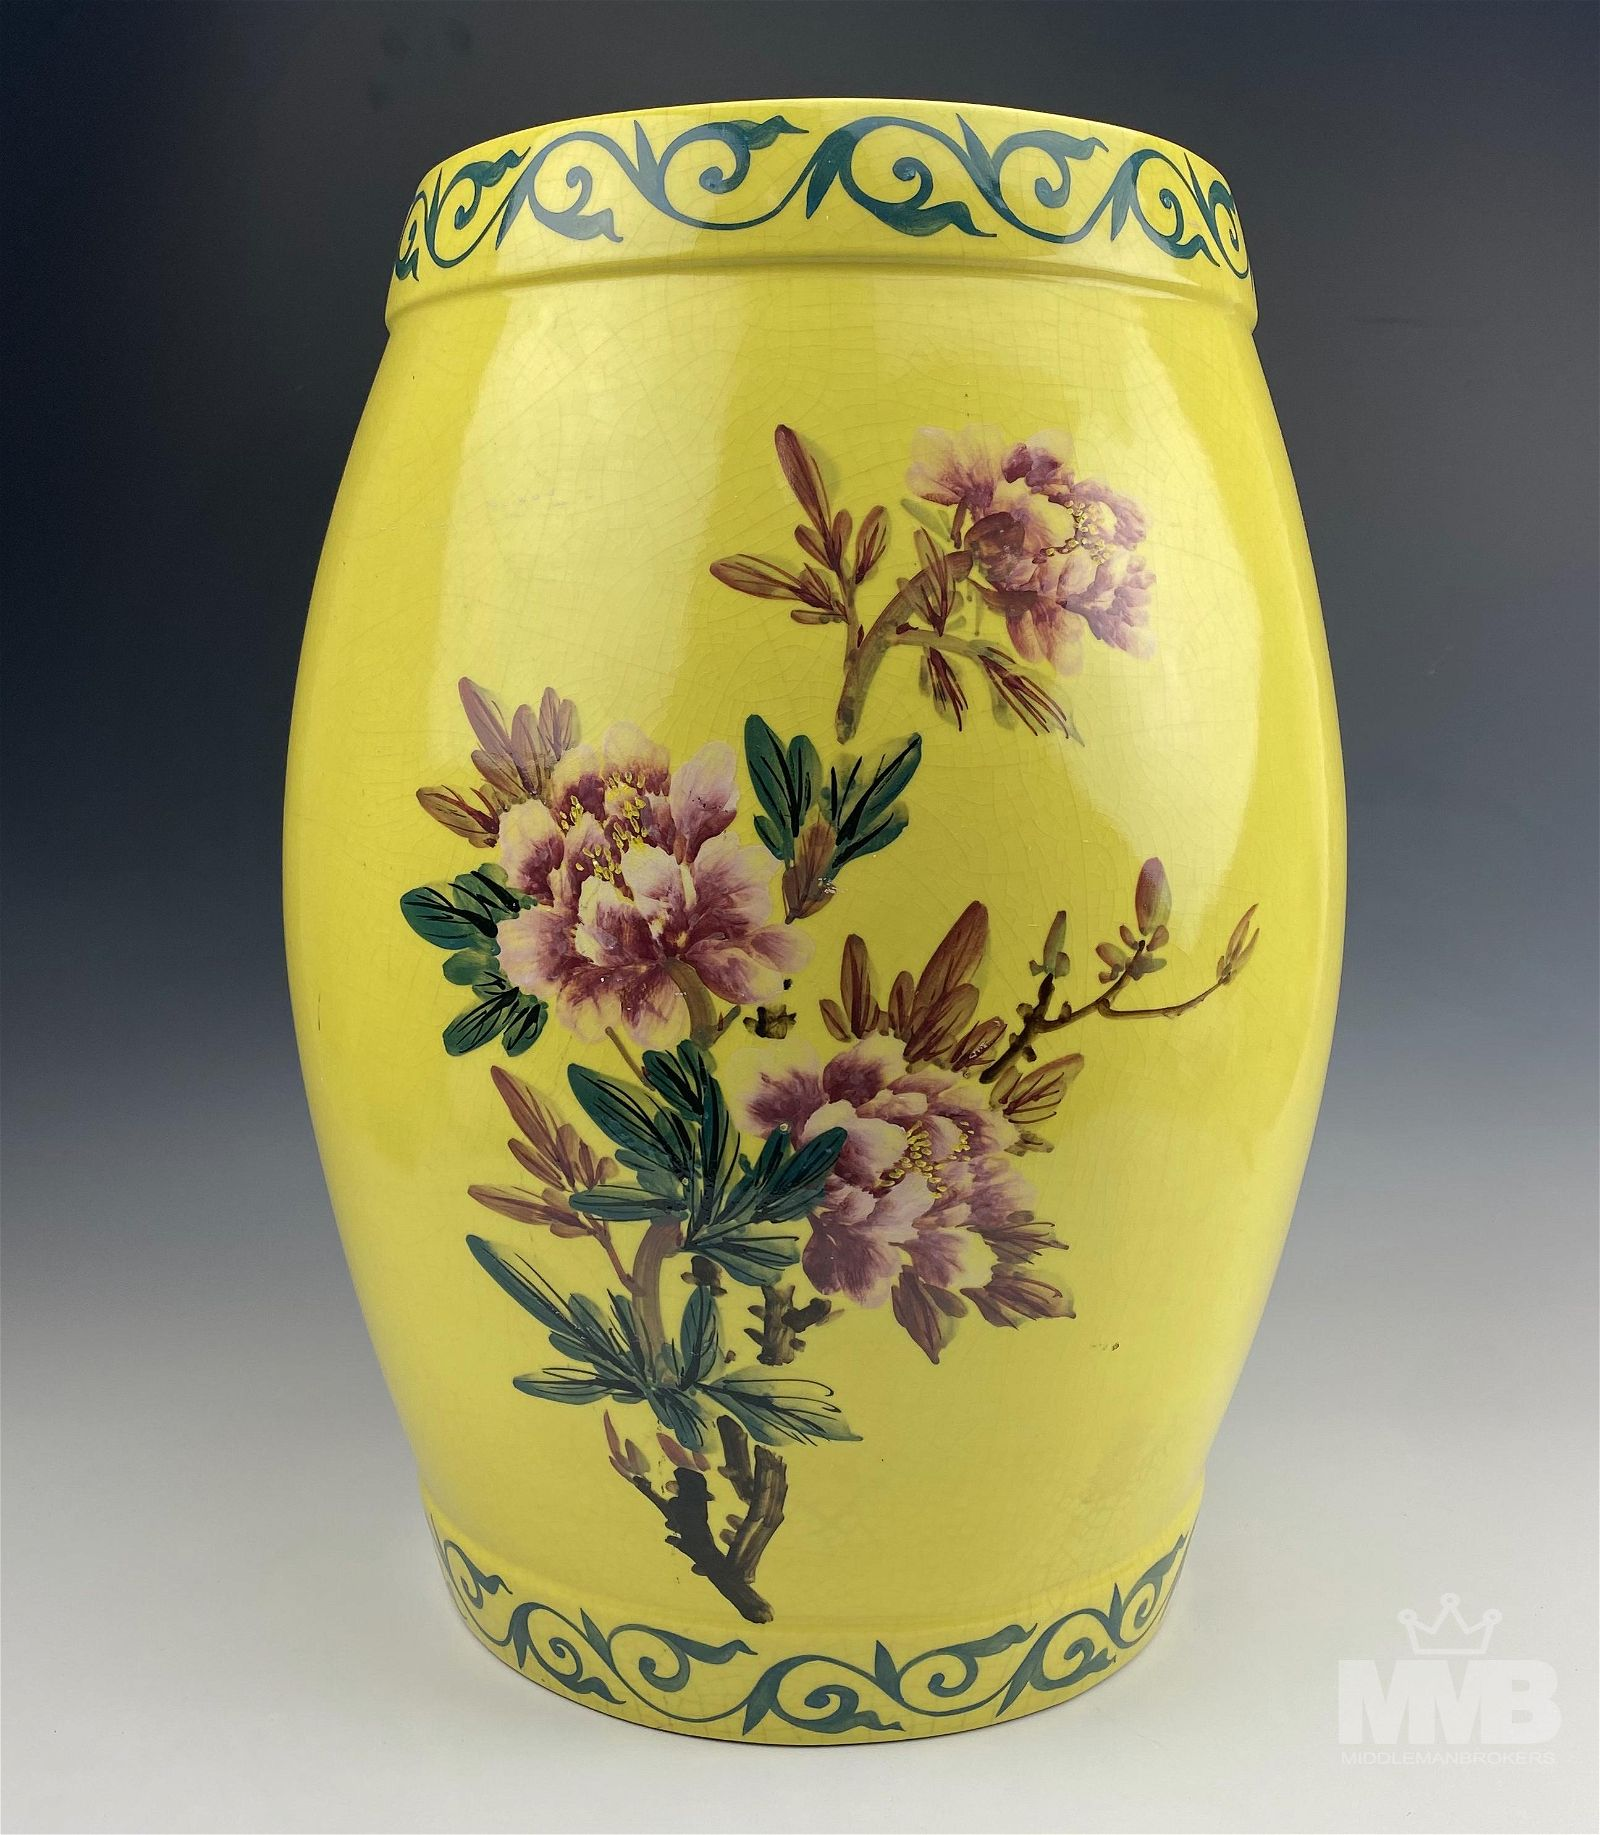 Chinese Export Imperial Yellow Garden Stool Seat